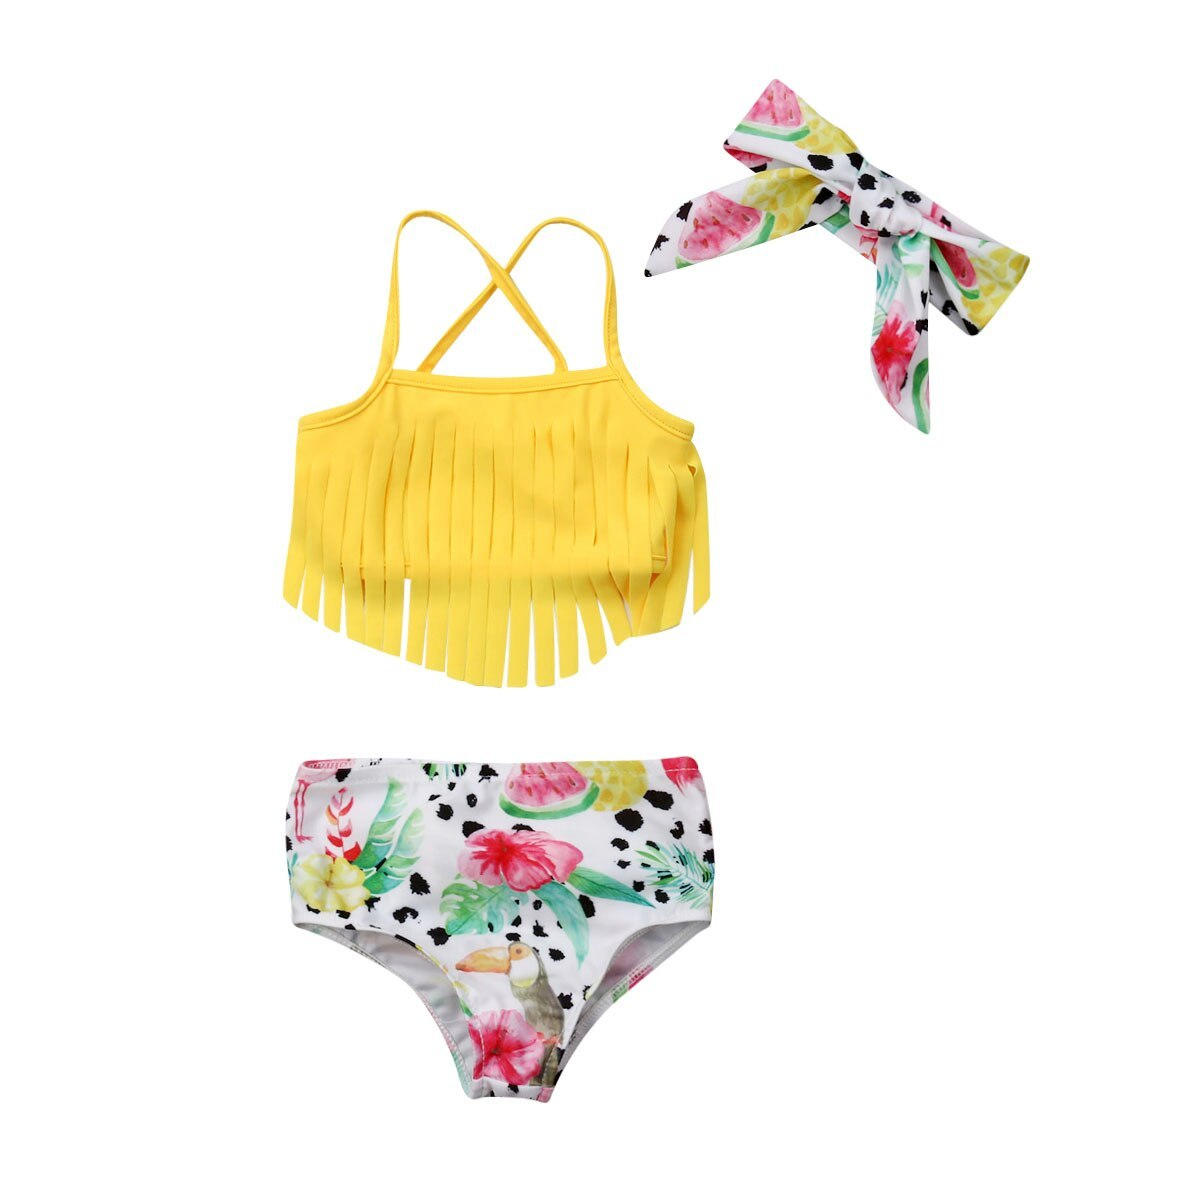 Newborn Infant Baby Girl Swimwear Suit Bird Floral Top Pant Outfit Beach Tankini